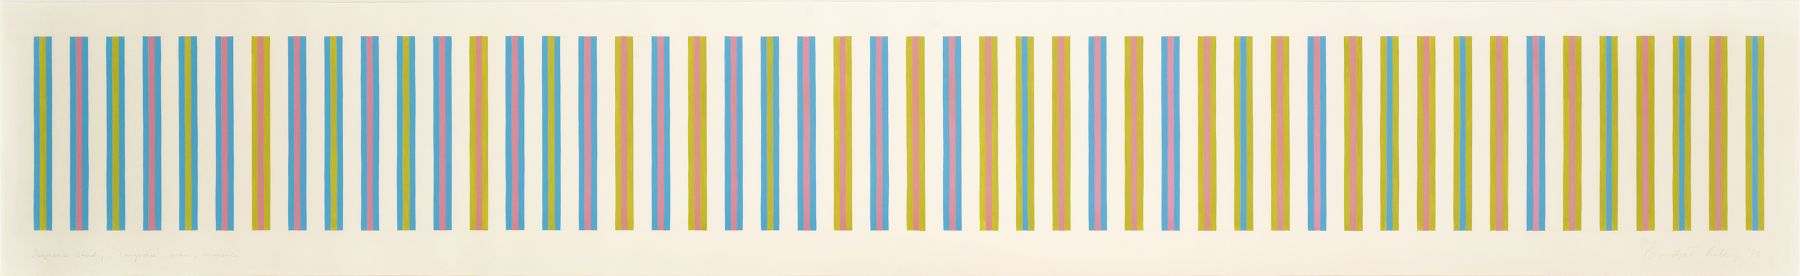 Bridget Riley, Sequence Study 2, Turquoise, Ochre, Magenta, 1973